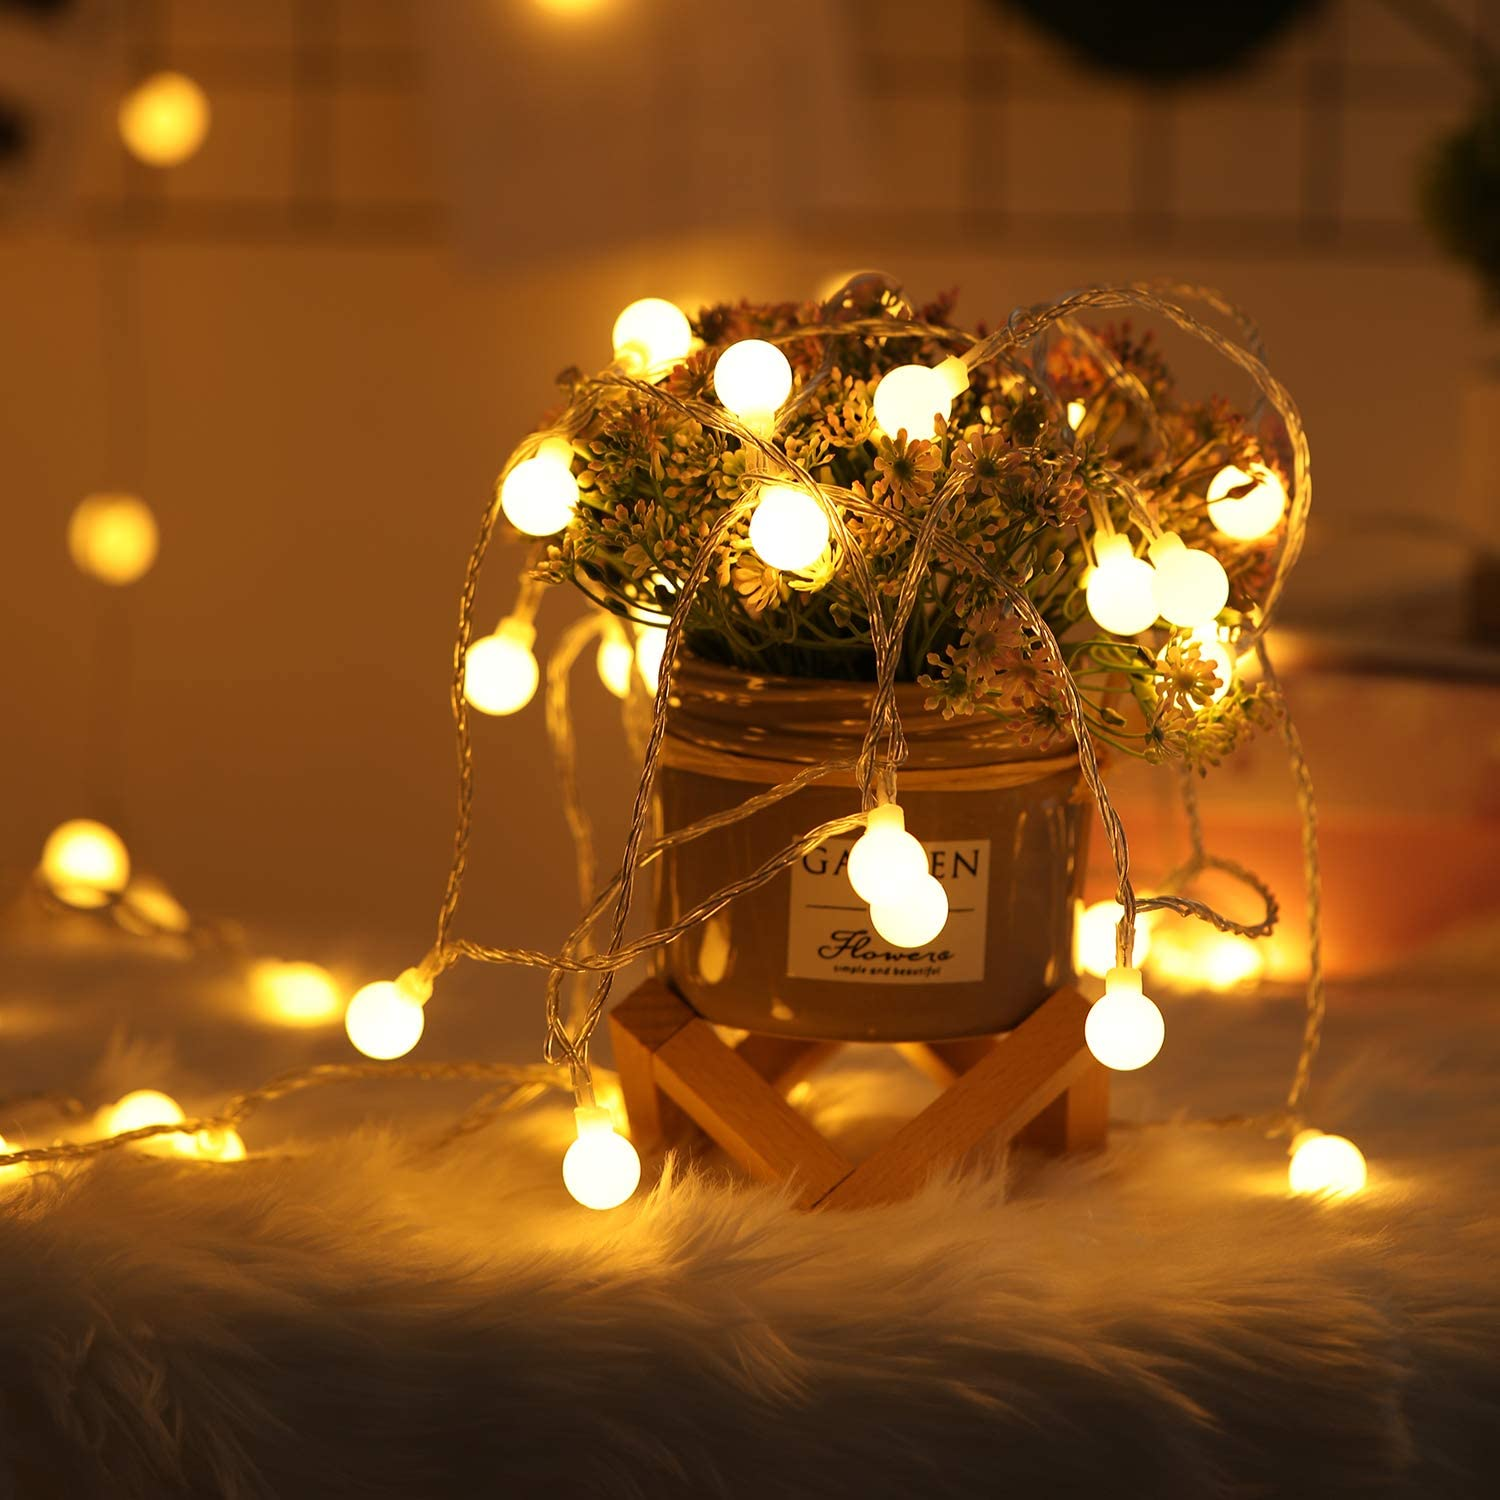 10m 100 Led Globe String Lights Fairy Globe String Lights Battery Indoor Outdoor Globe Lights With Remote For Garden Patio Bedroom Party Wedding Christmas Decoration Warm White Garden Outdoors Outdoor Lighting